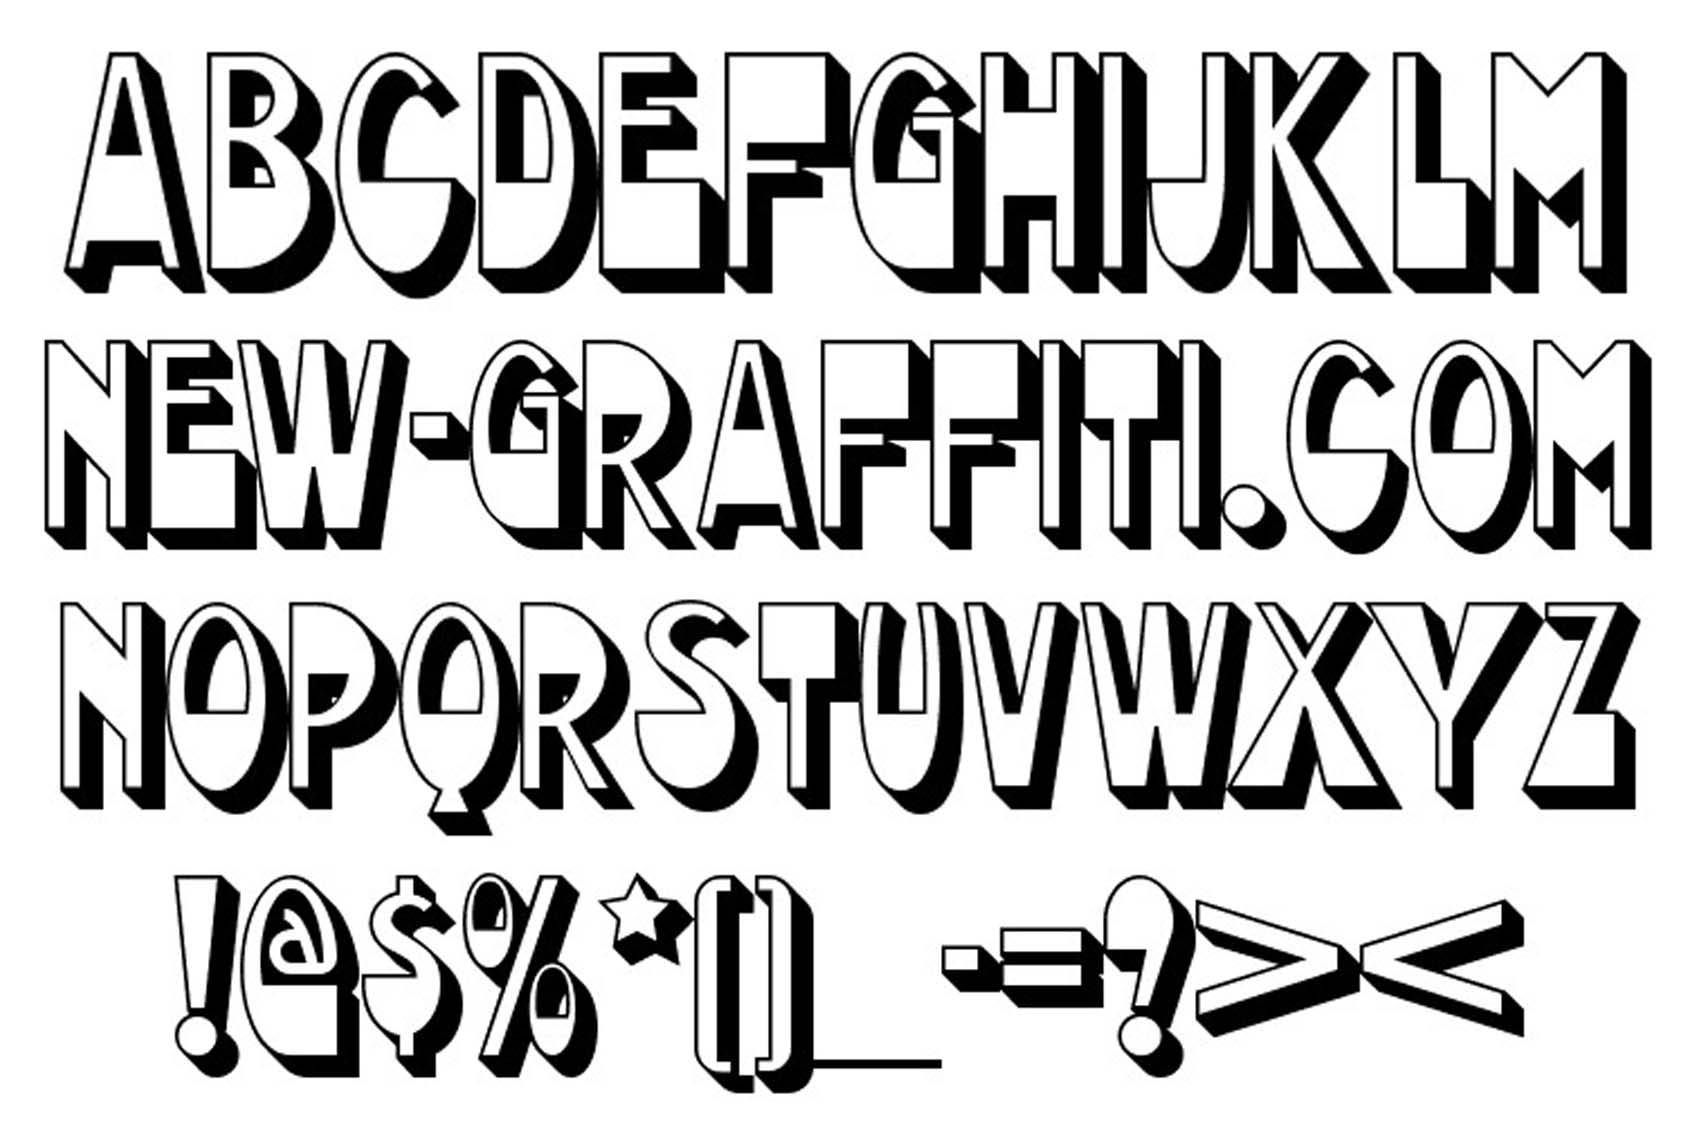 16 Types Of Graffiti Fonts Images Different Types Of